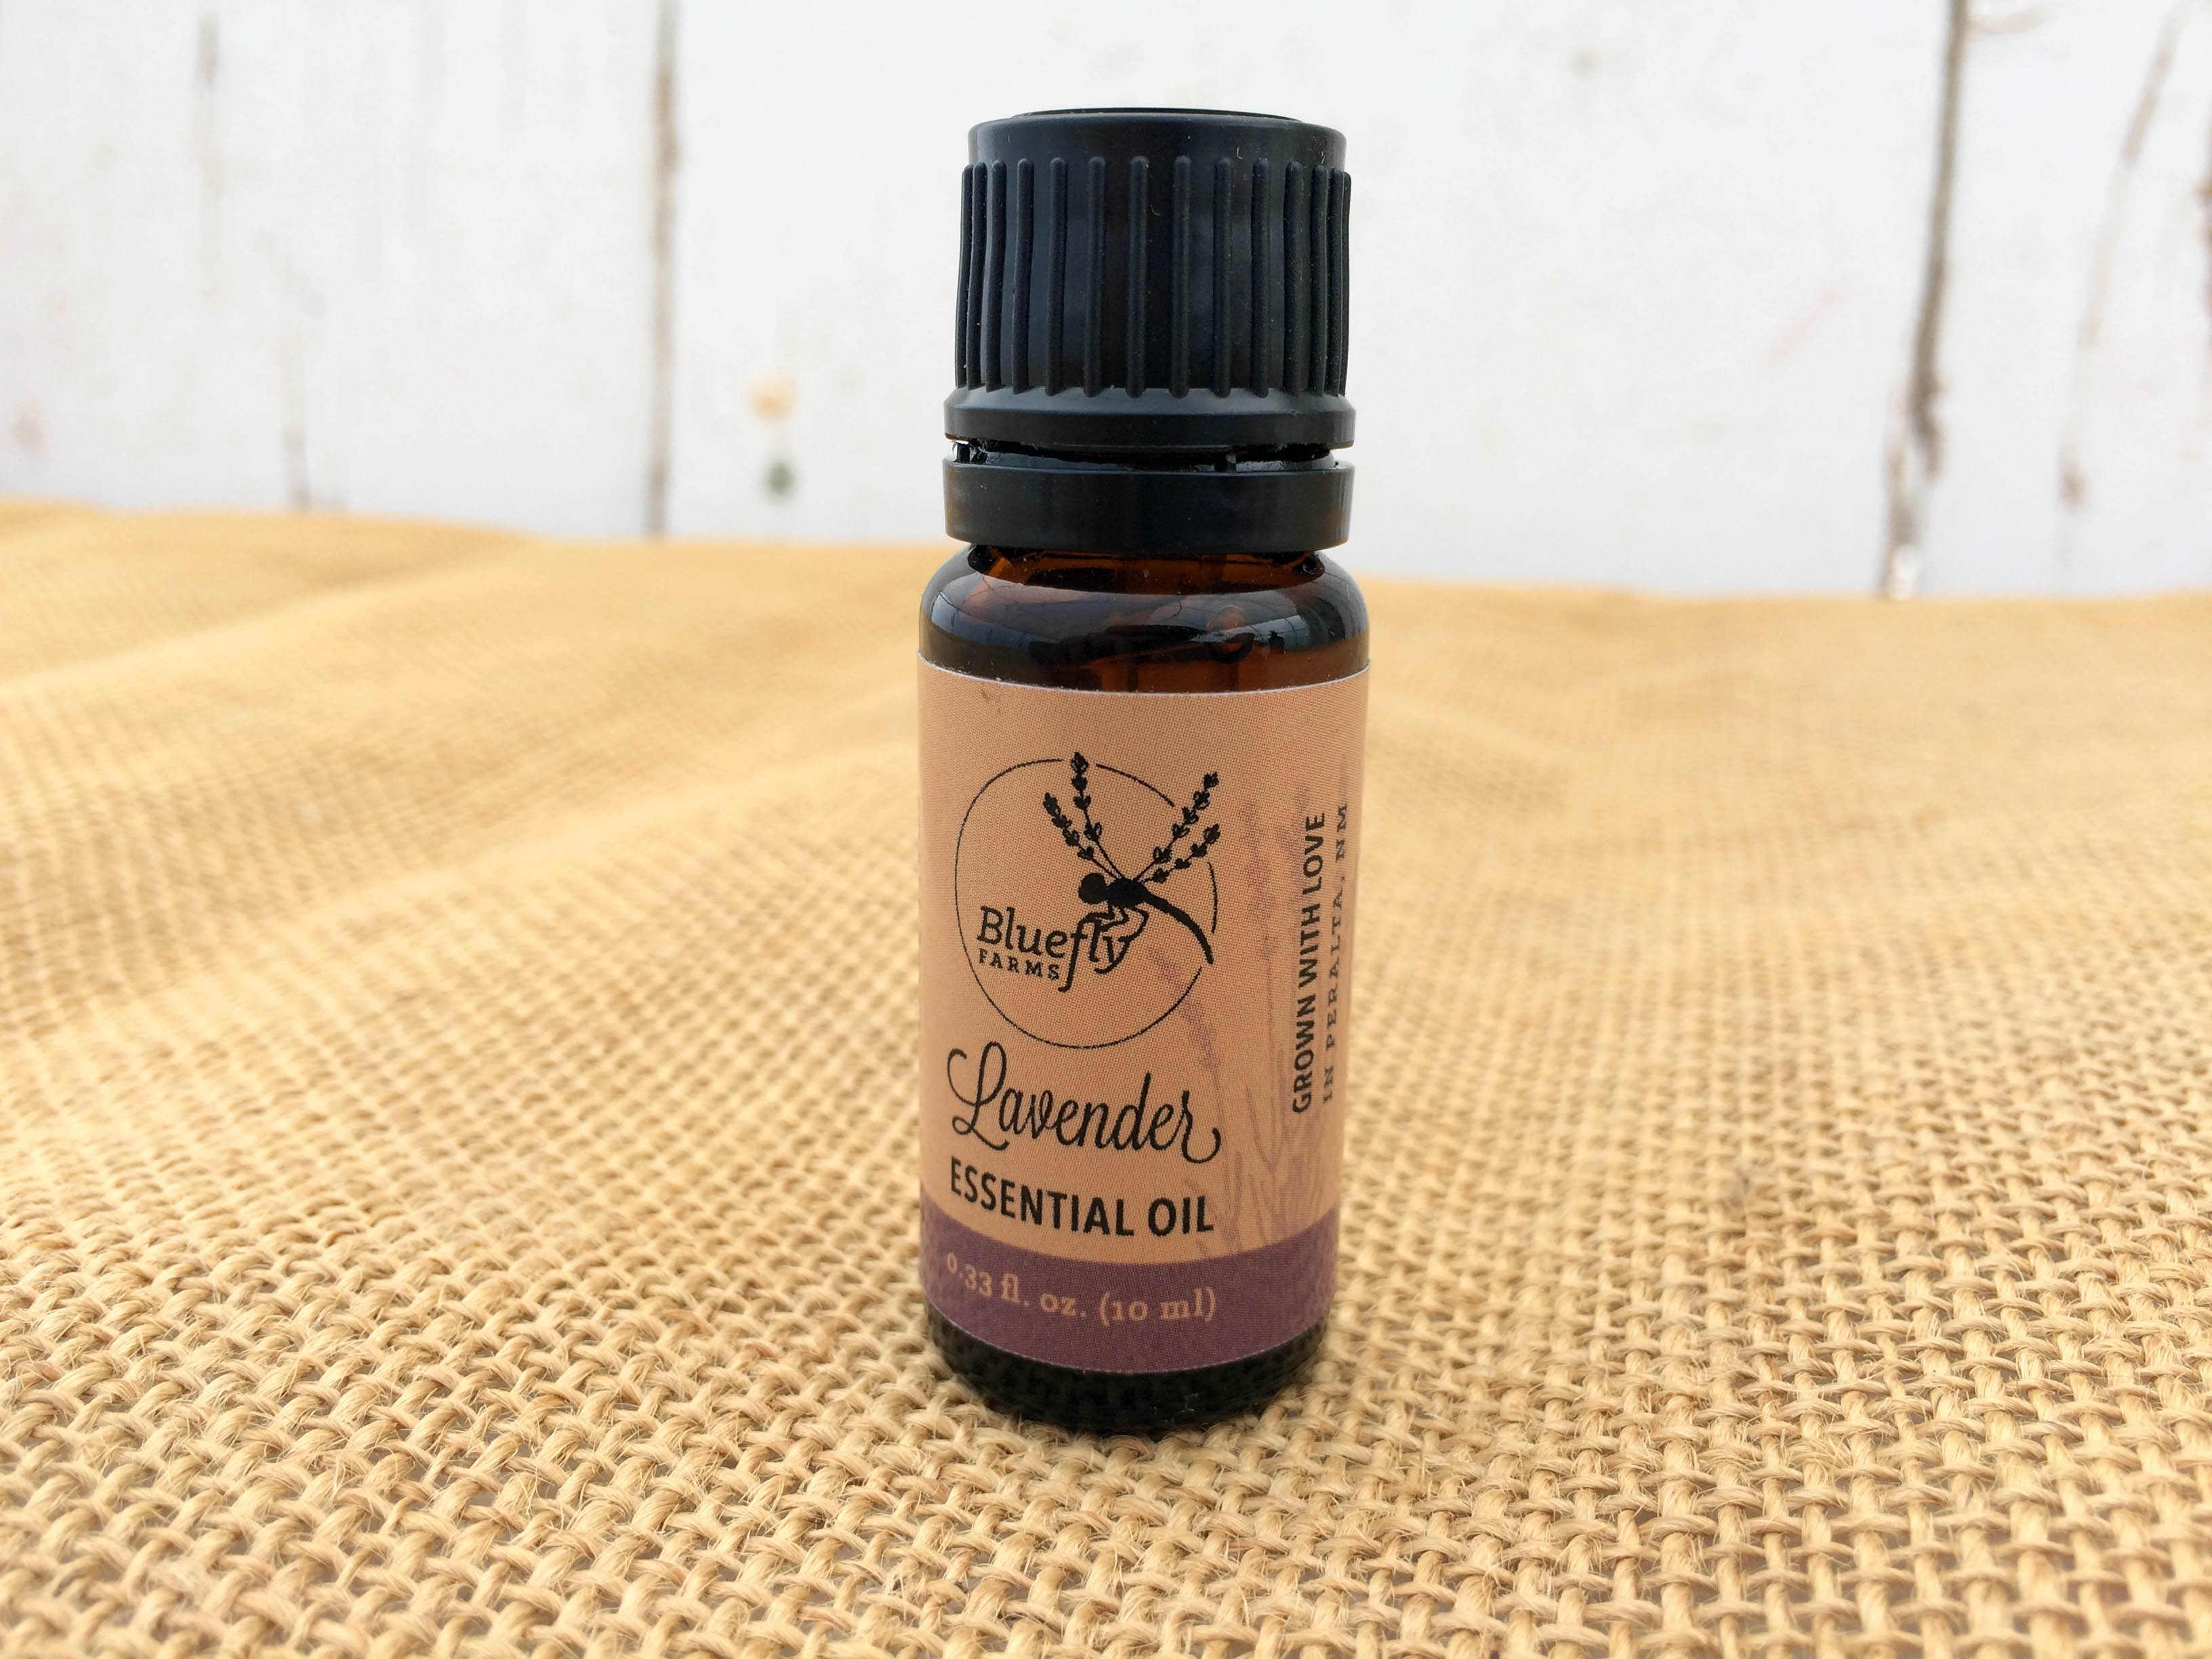 Lavender Essential Oil 10ml Steam Distilled from Organic Lavender